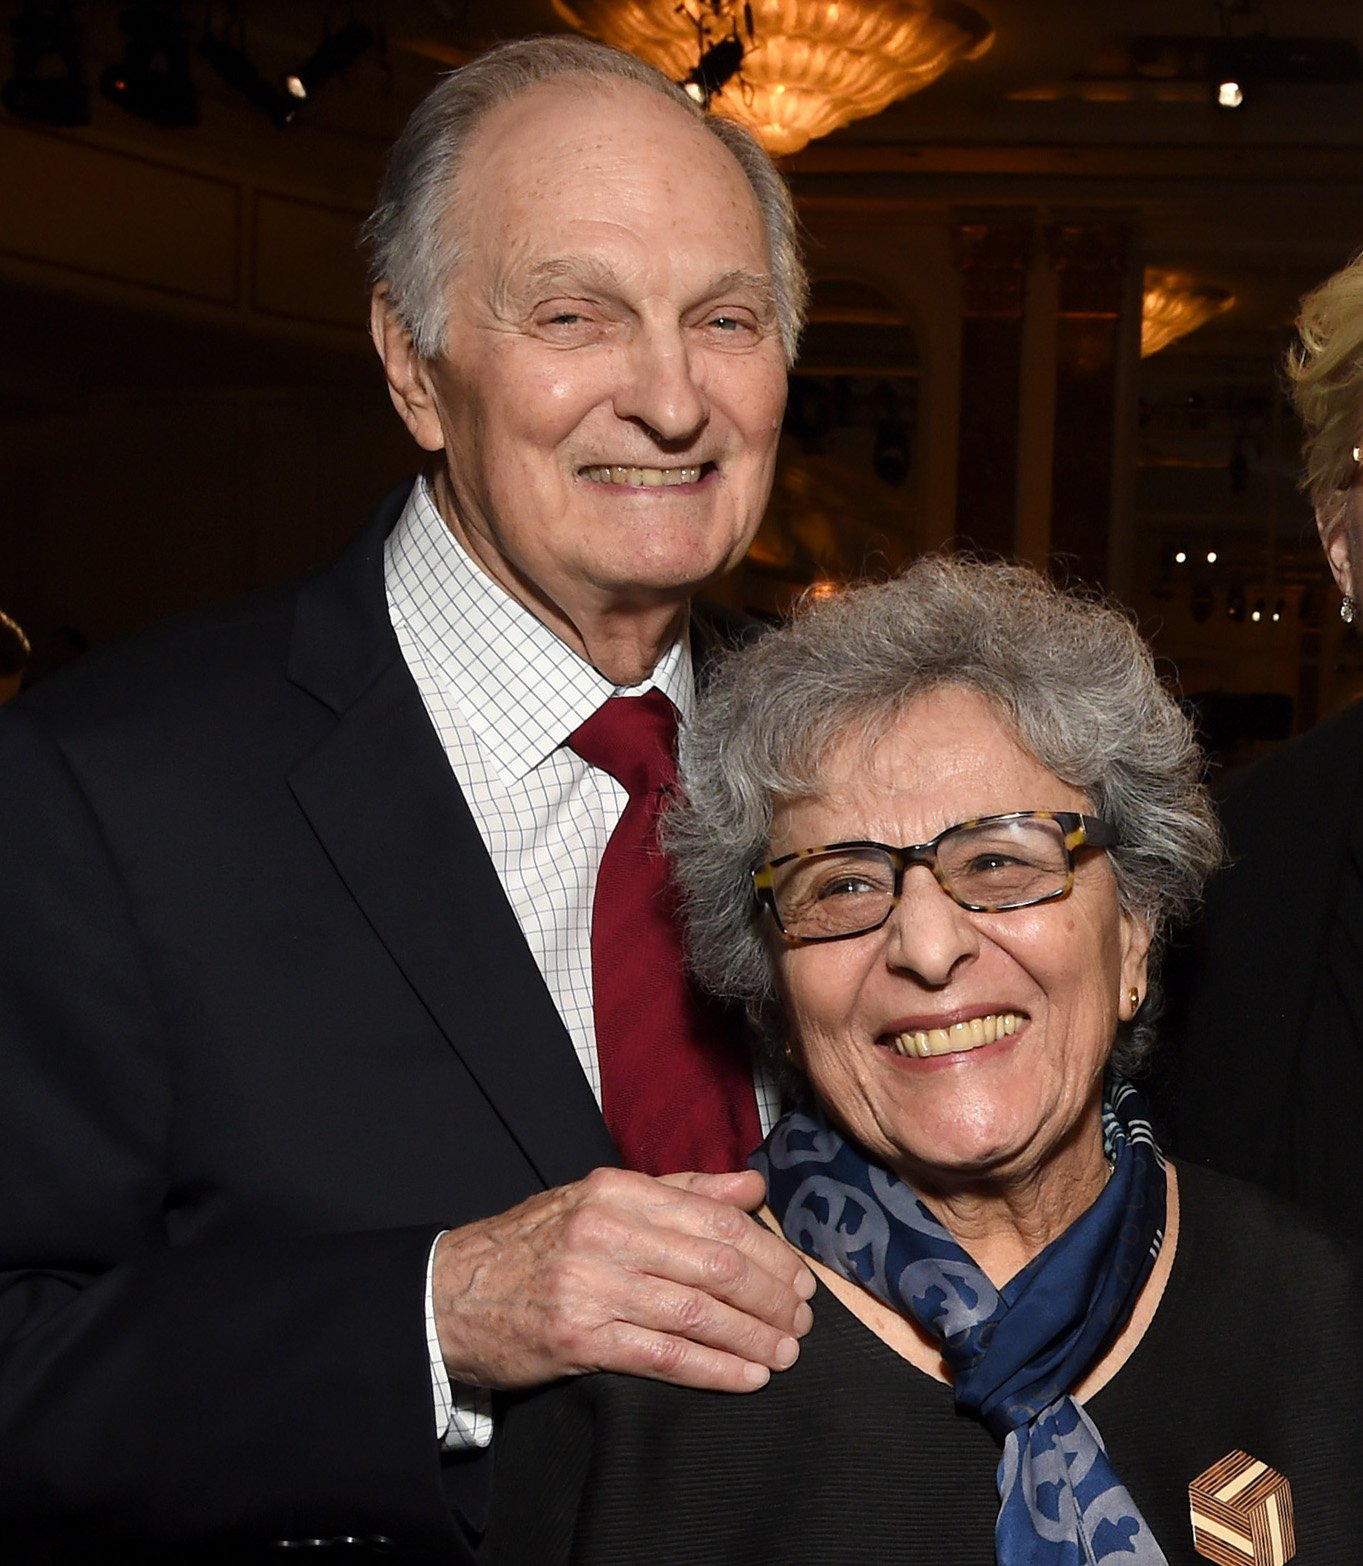 actor alan alda and his wife arlene smiling at a hollywood event